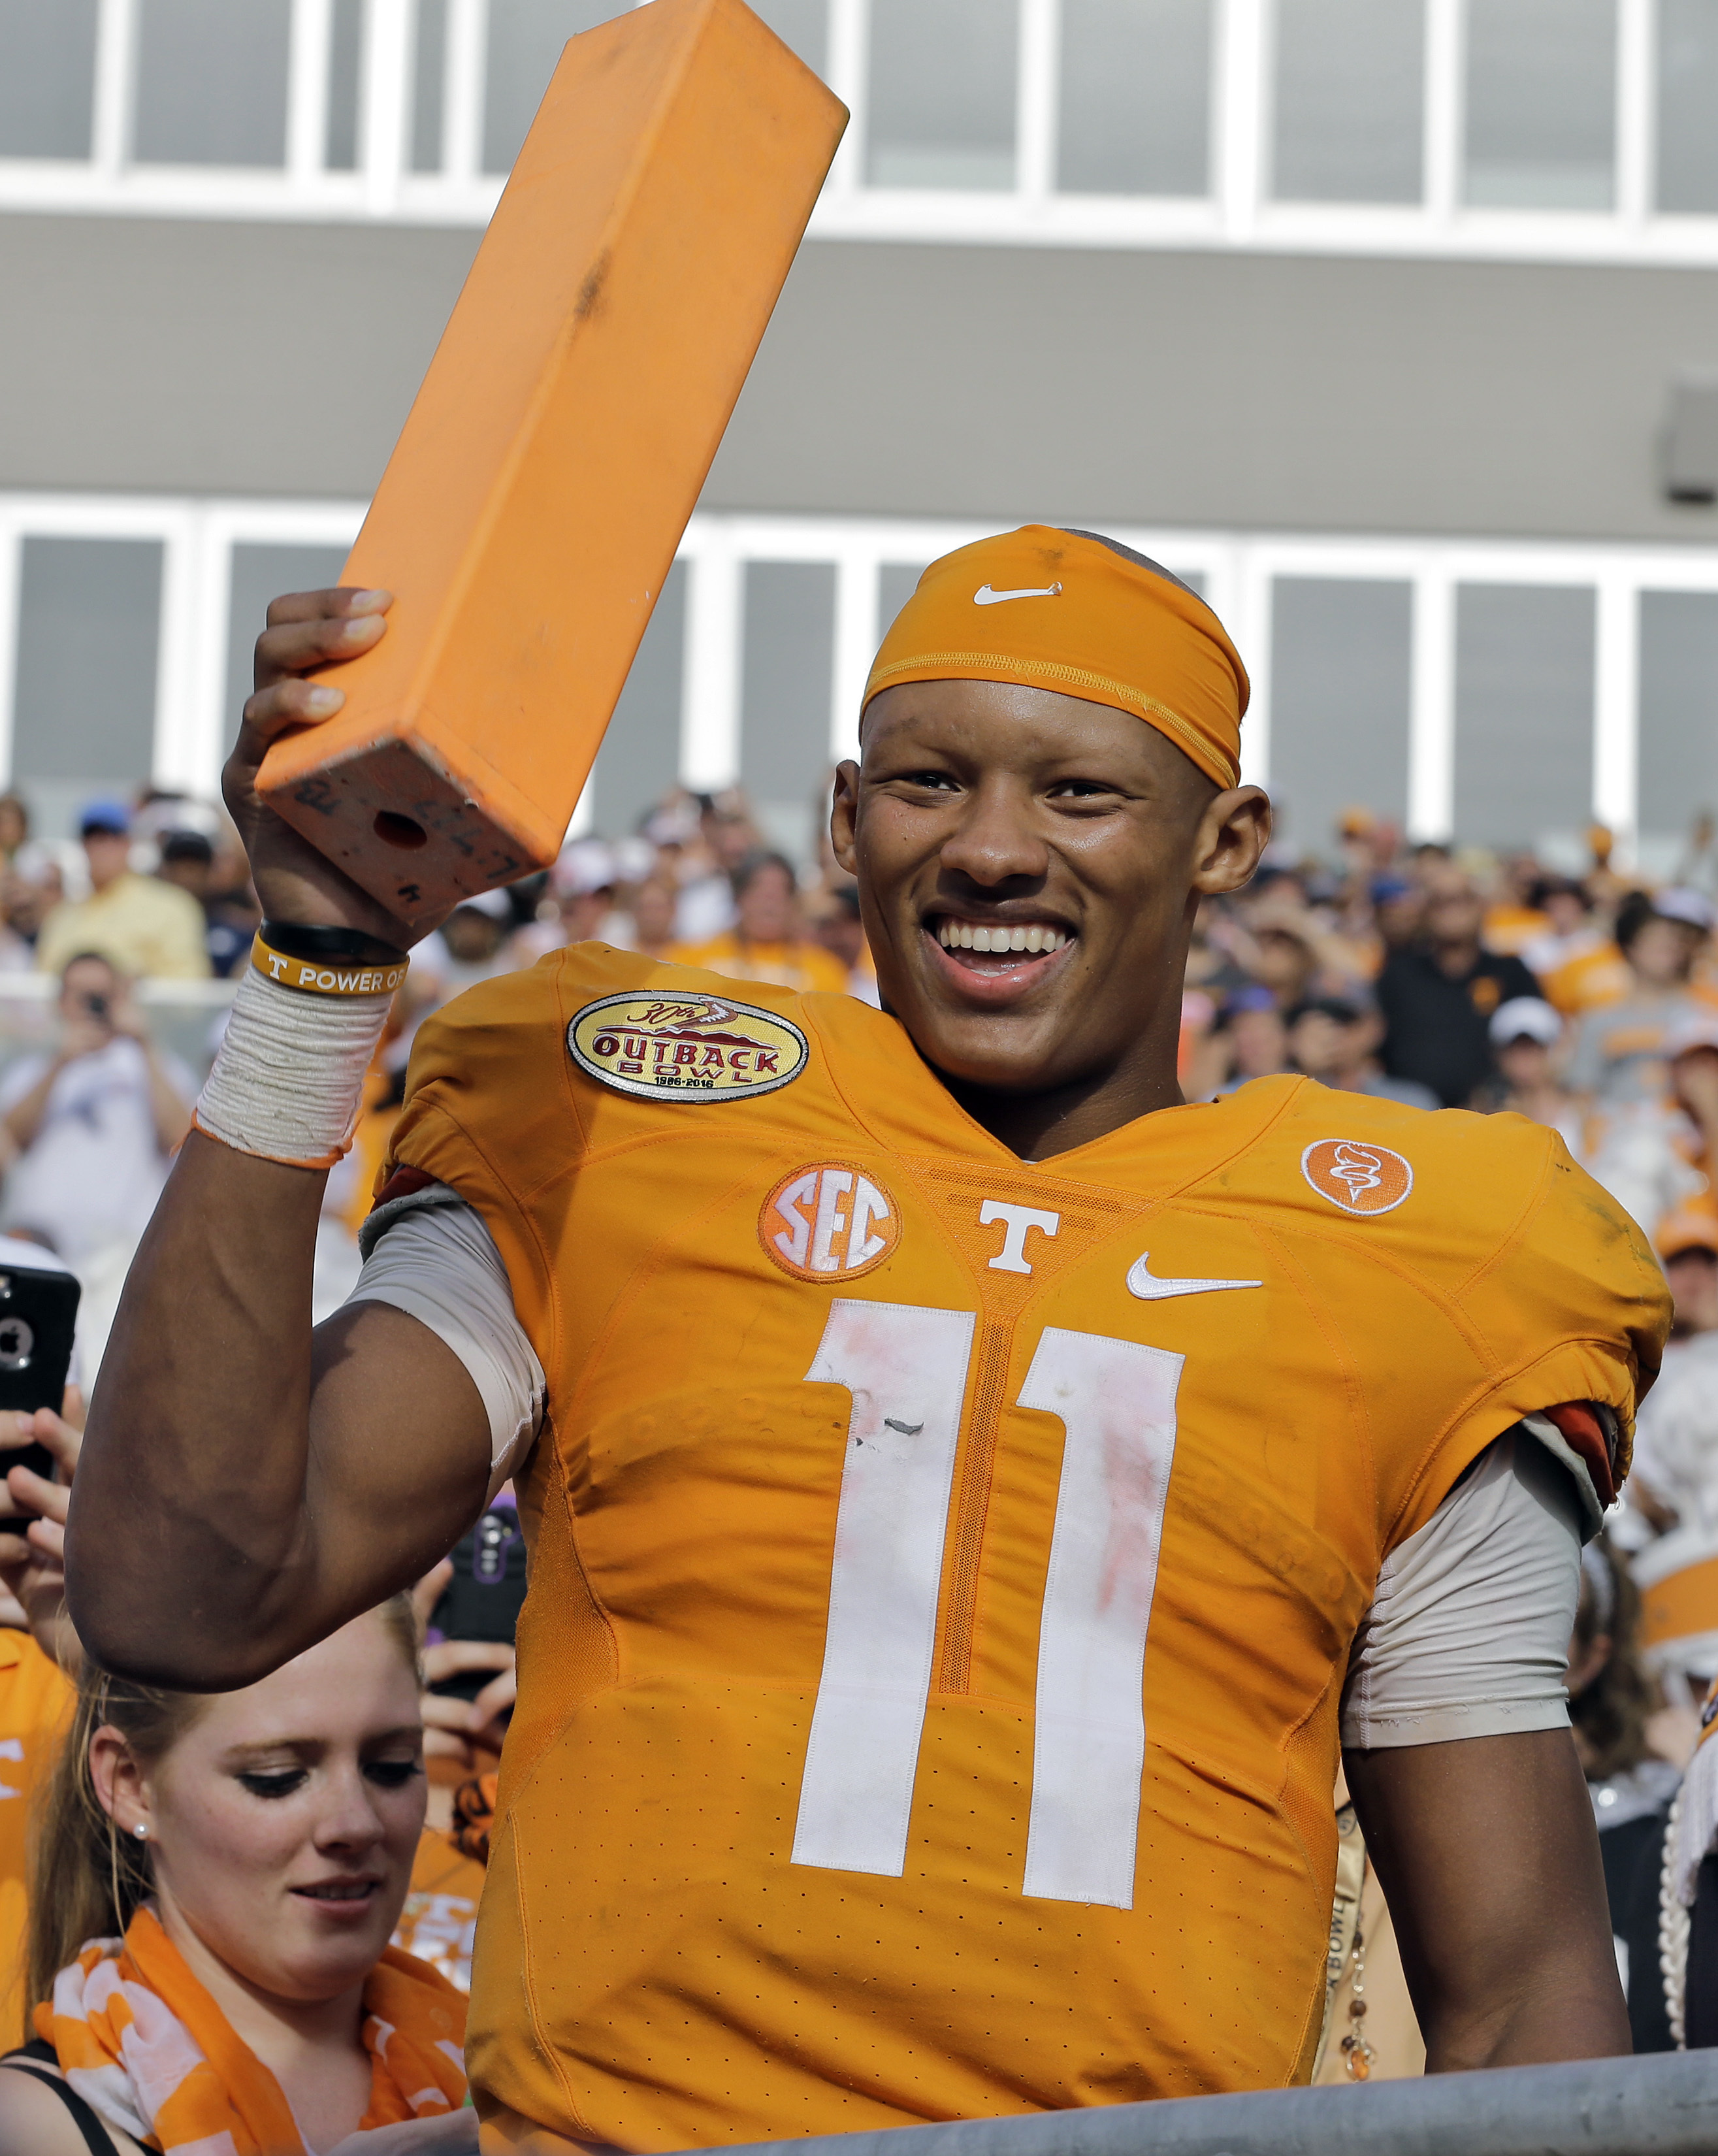 FILE - In this Jan. 1, 2016, file photo, Tennessee quarterback Joshua Dobbs smiles as he holds a pylon after their 45-6 win over Northwestern in the Outback Bowl NCAA college football game, in Tampa, Fla. Teammates and coaches say they've noticed a differ